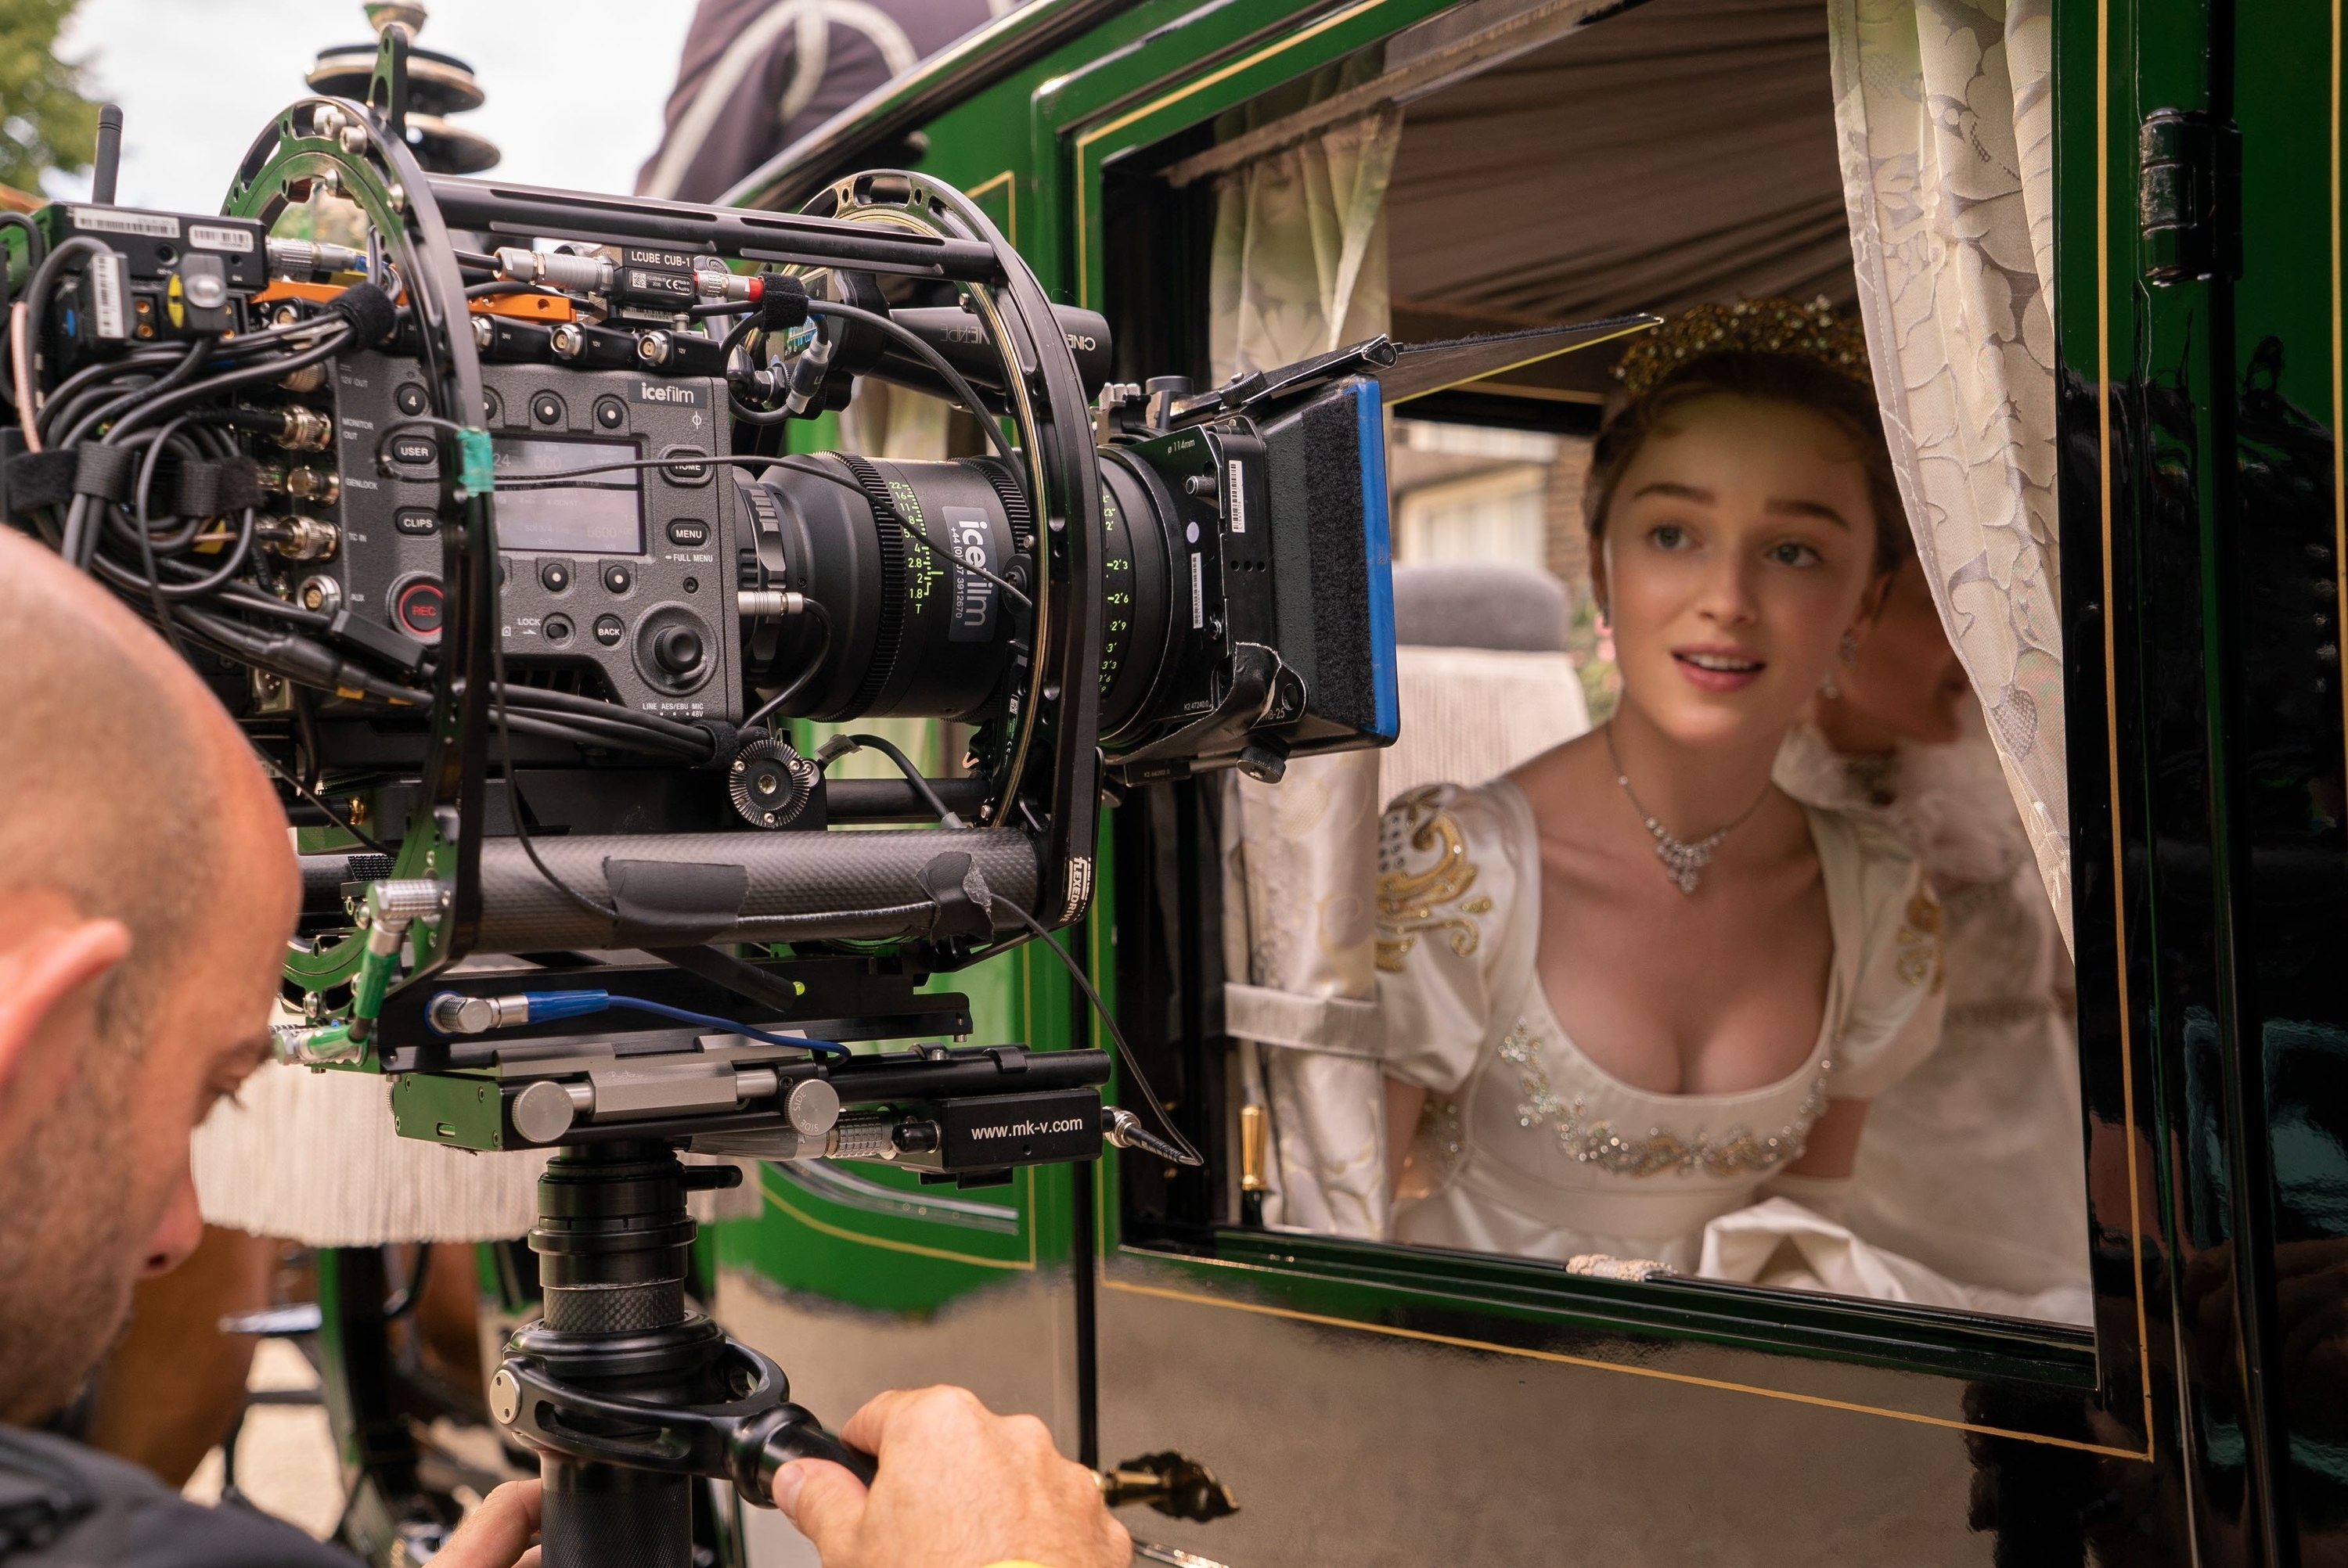 Phoebe Dynevor filming on a green screen in a carriage